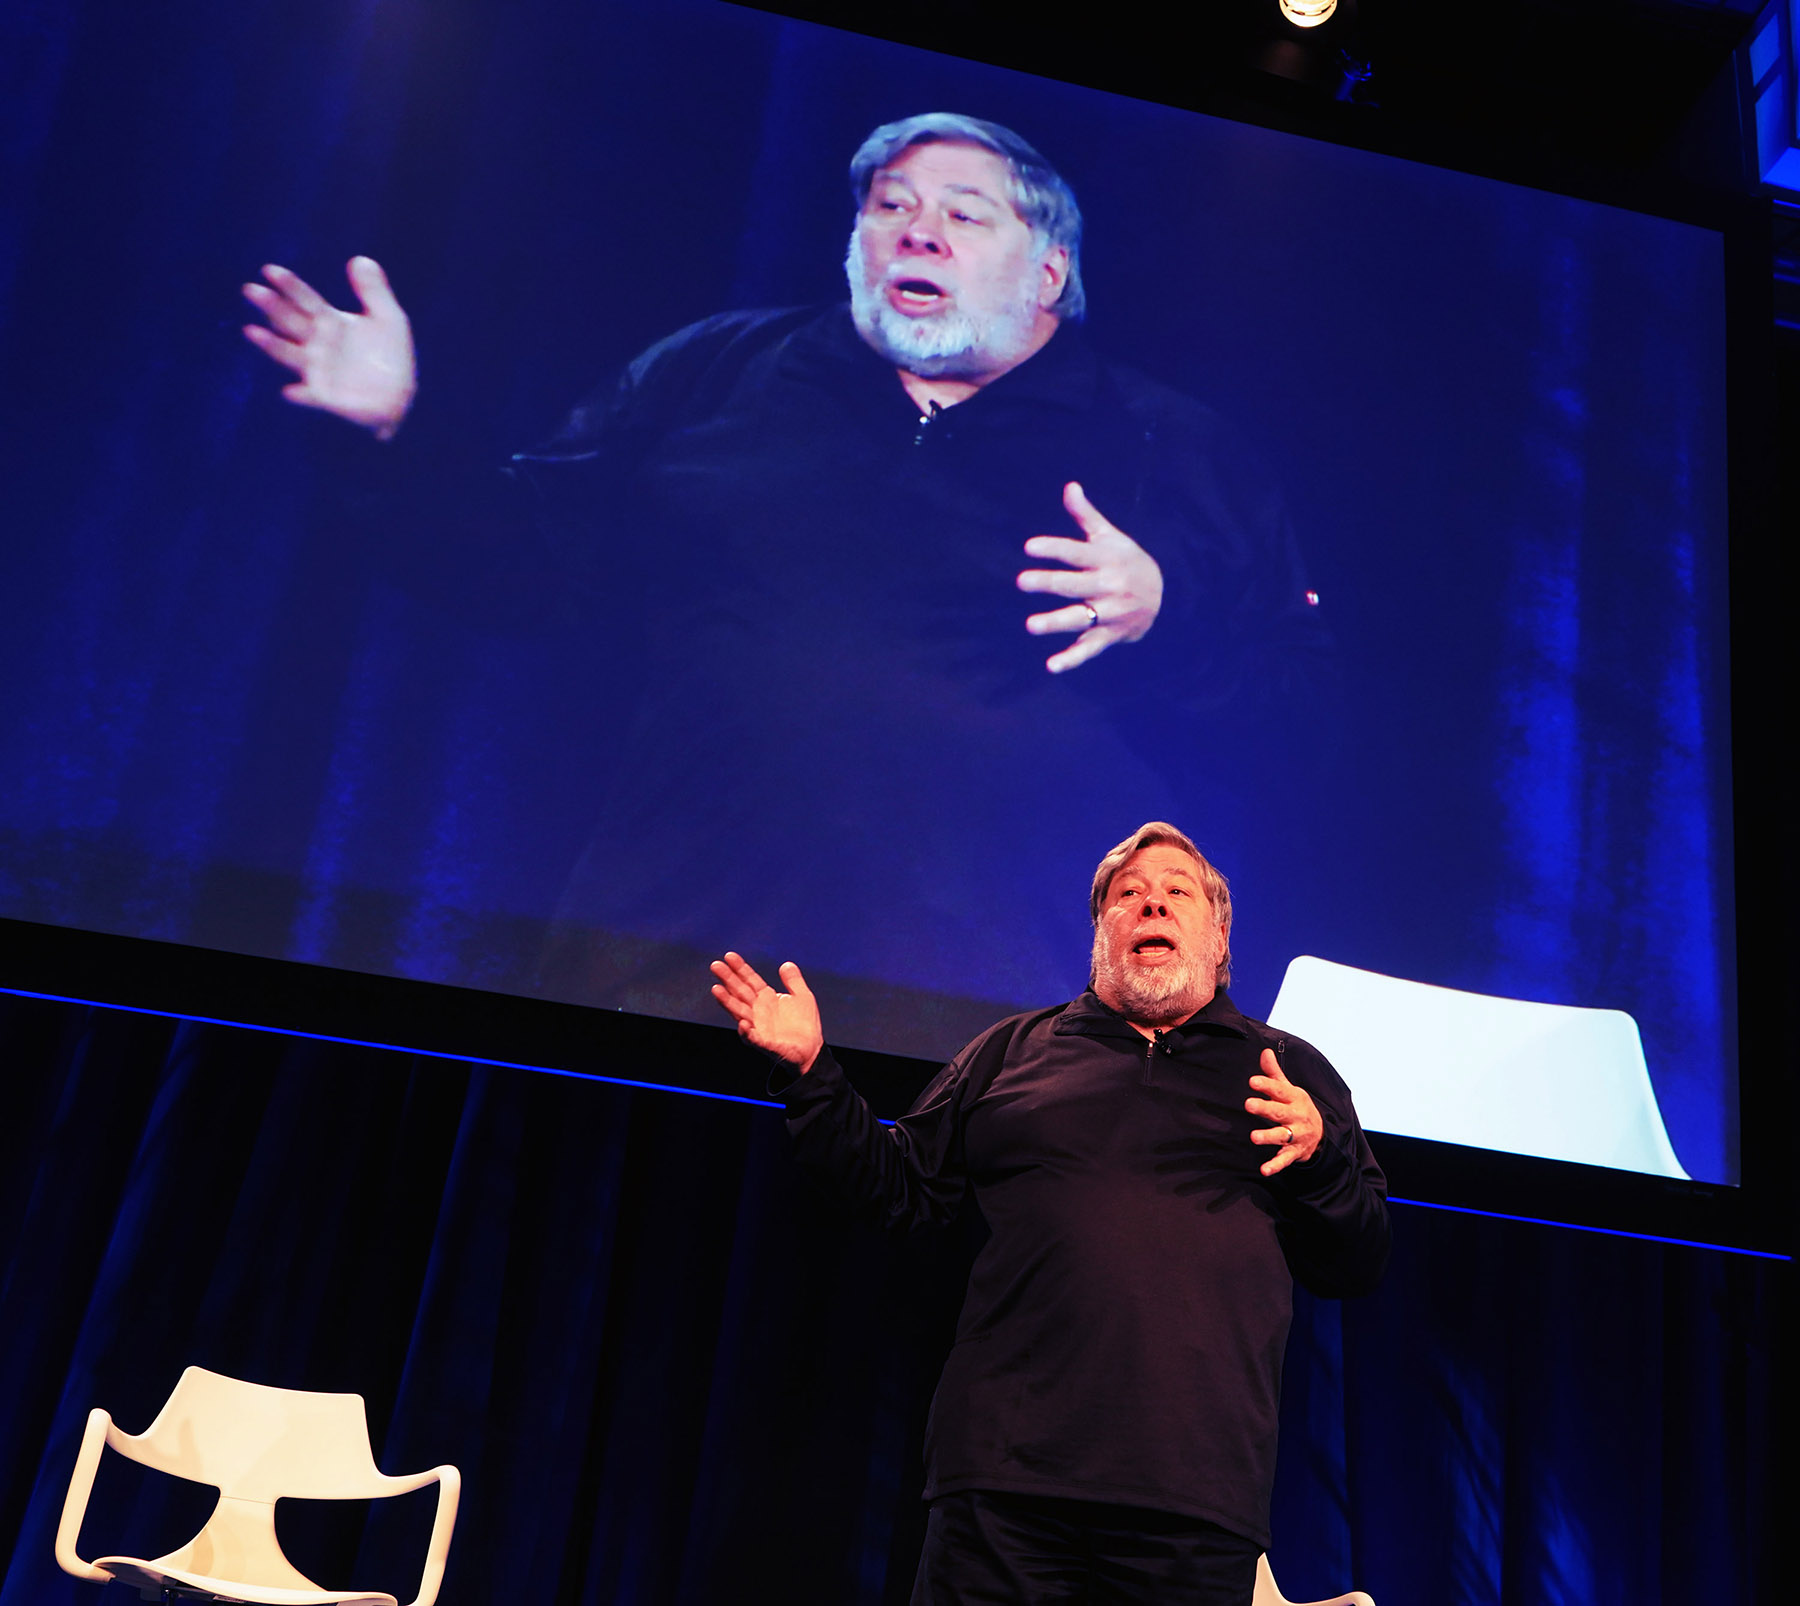 man on stage at CRE.Converge conference using his hands to gesture broadly